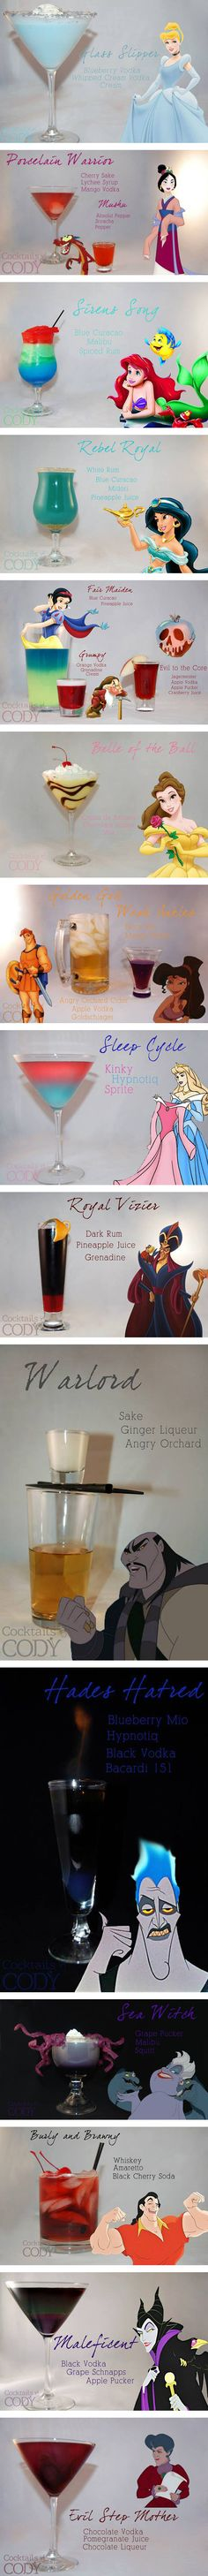 Disney princess themed cocktails.. Yeasssss!